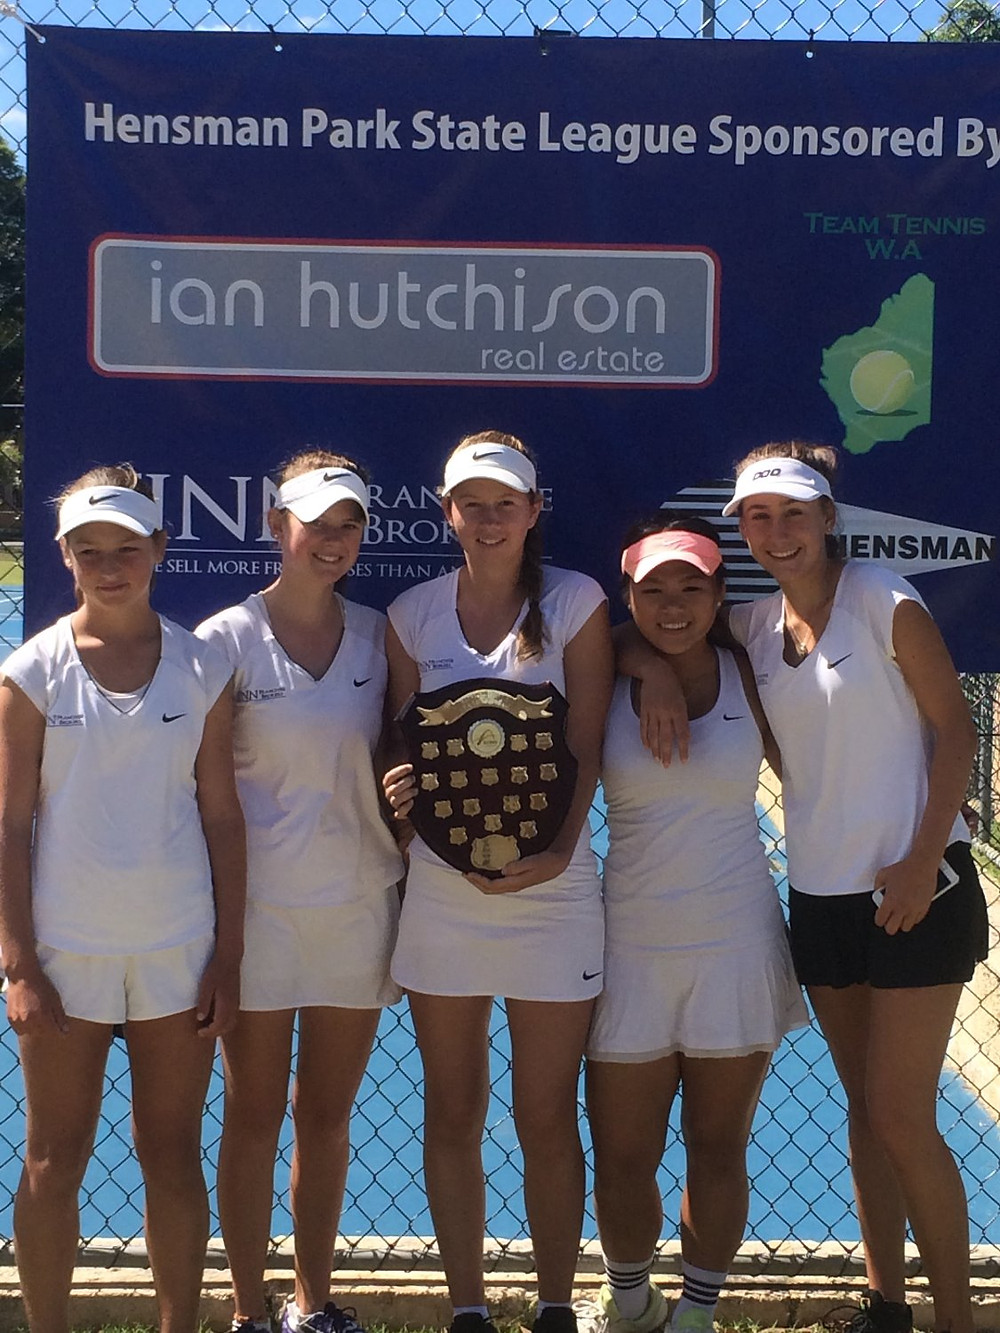 The Hensman Park State LKeague Girls team have woin their second consecutive title defeating